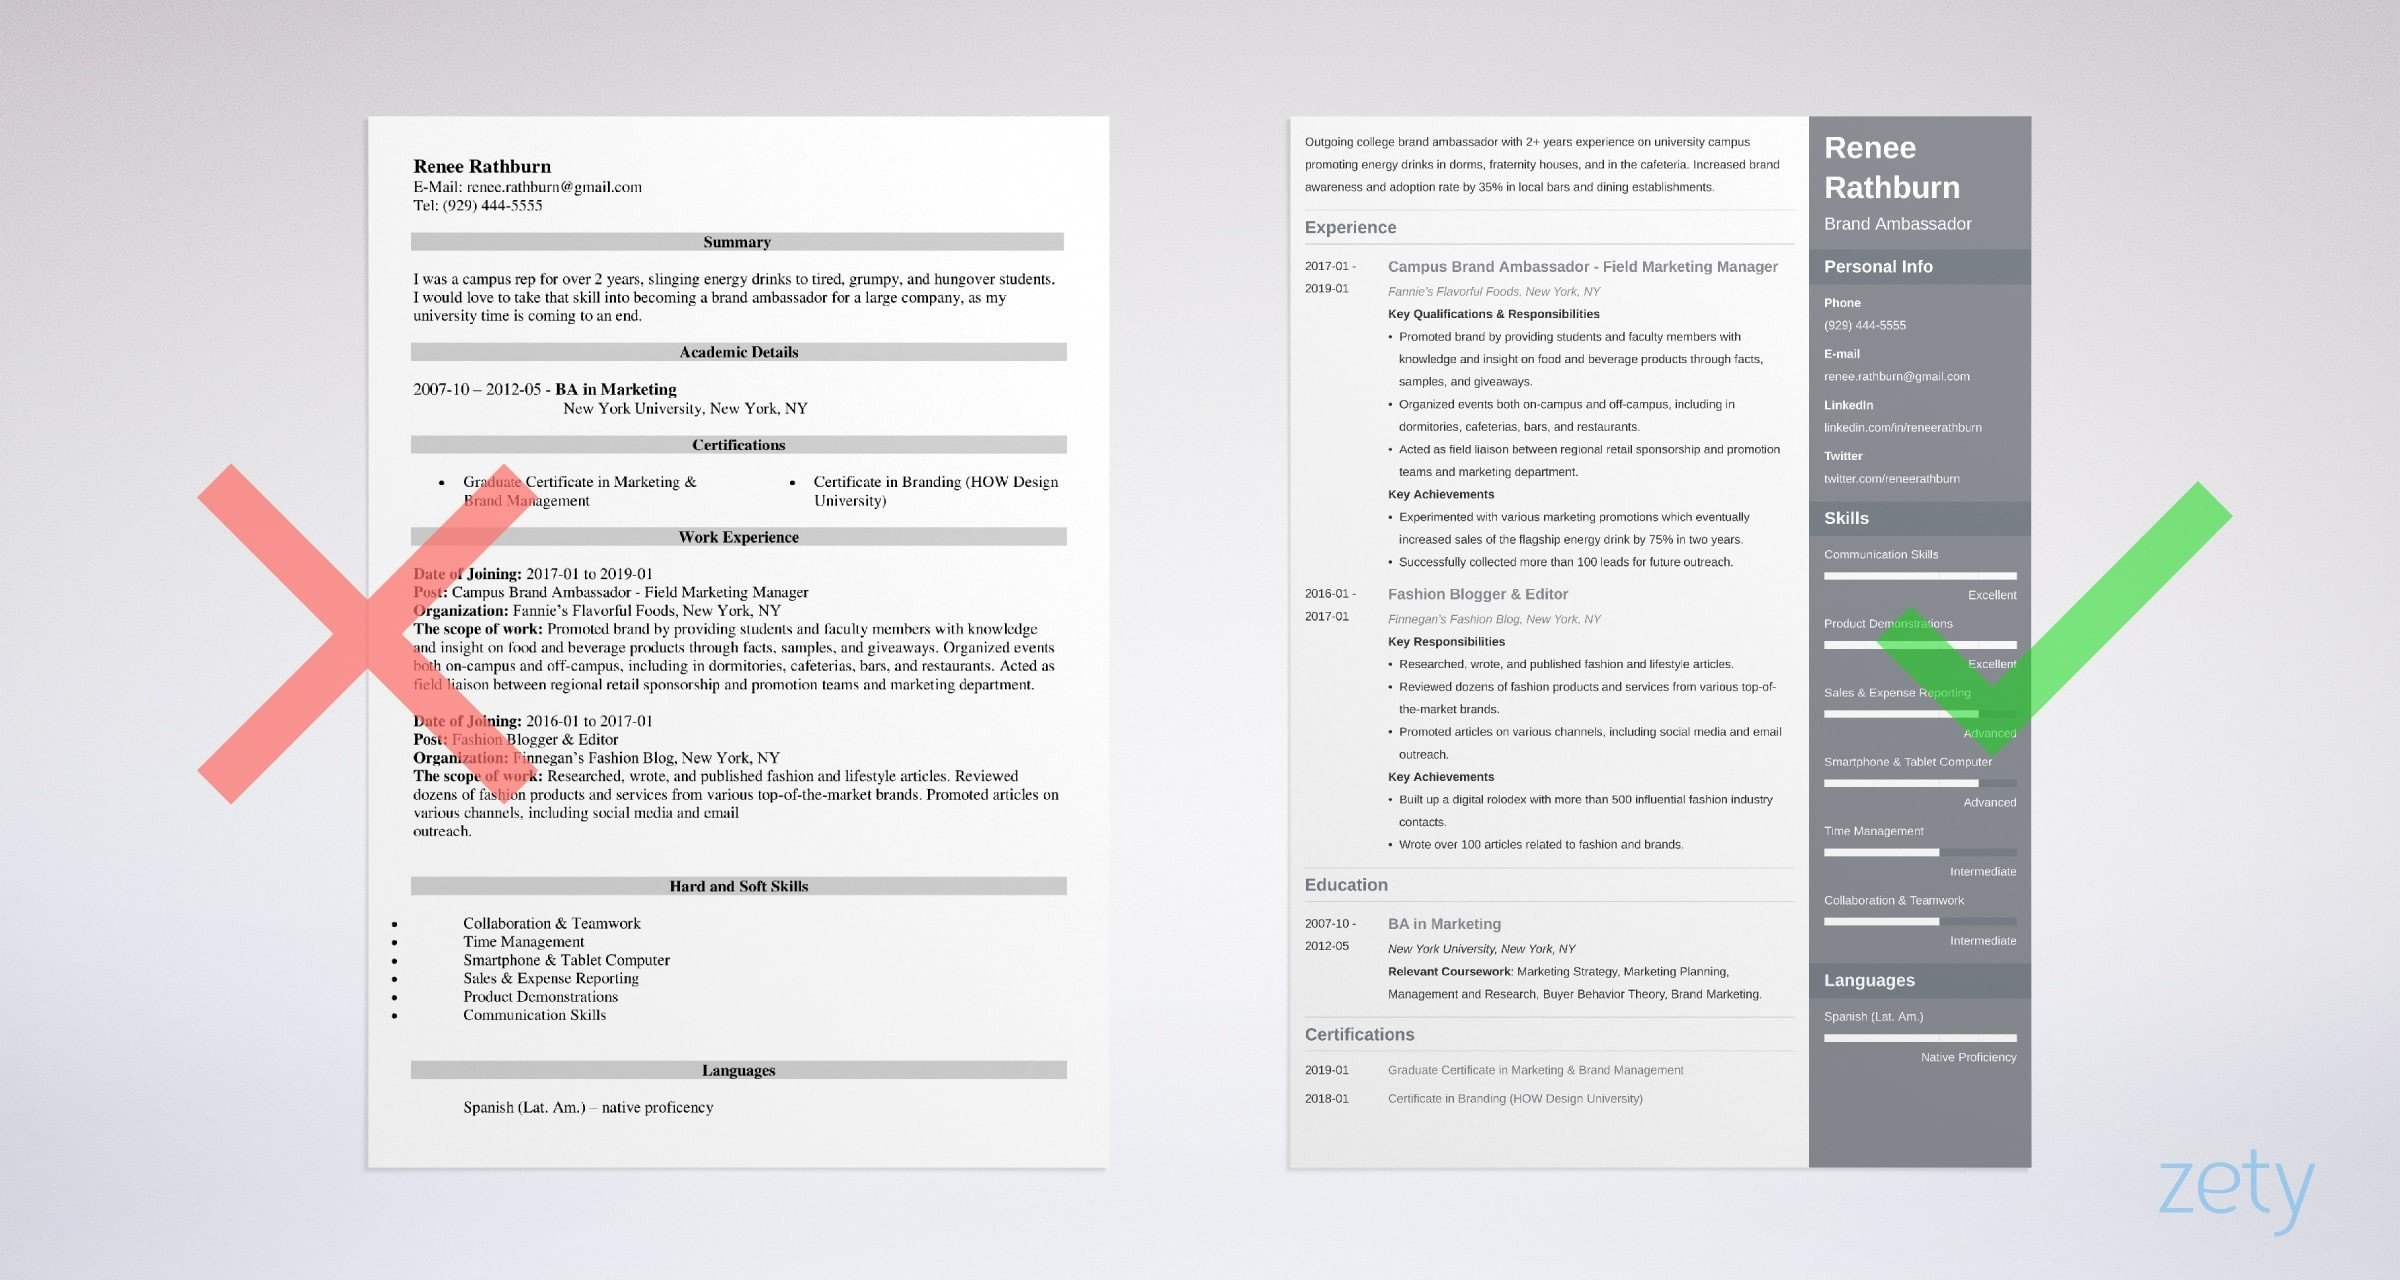 brand ambassador resume examples with skills and duties entry level example objective for Resume Entry Level Brand Ambassador Resume